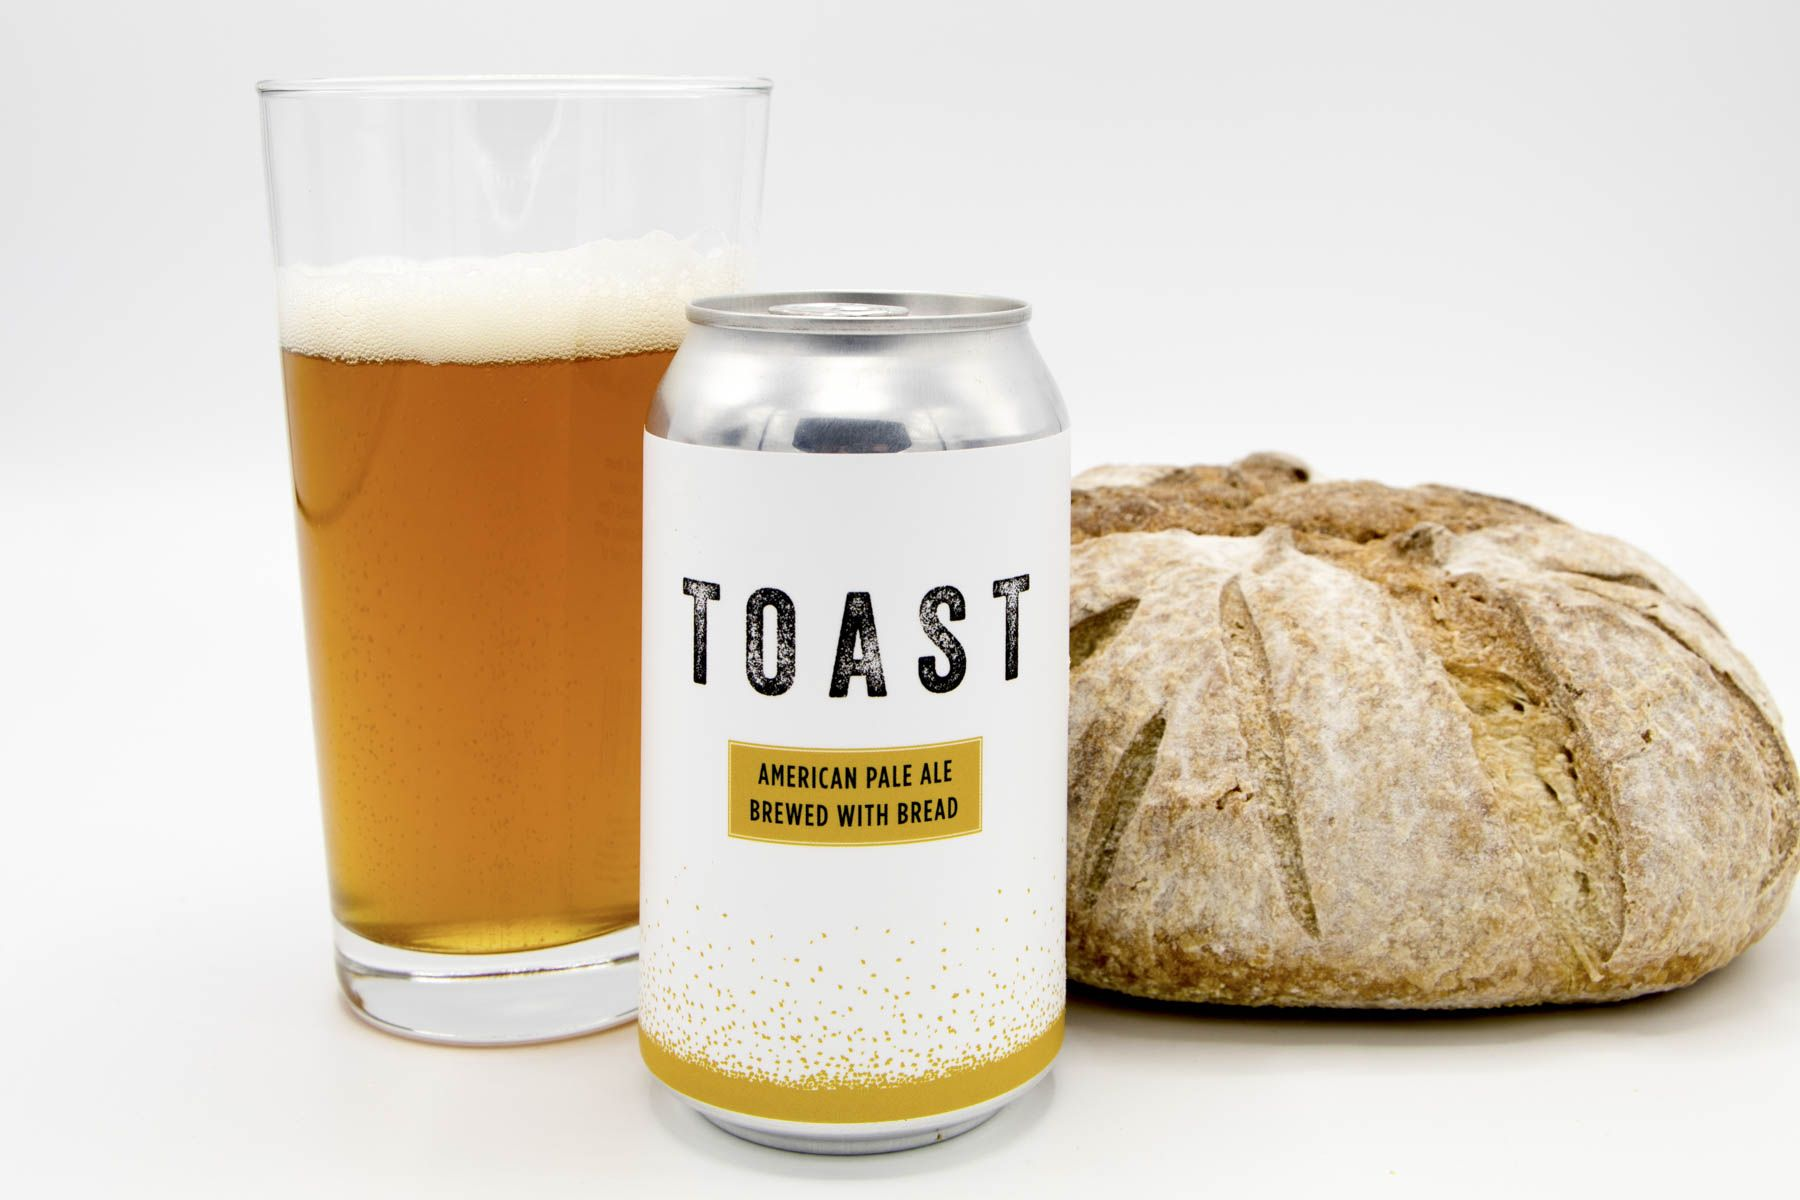 toast ale made from food waste